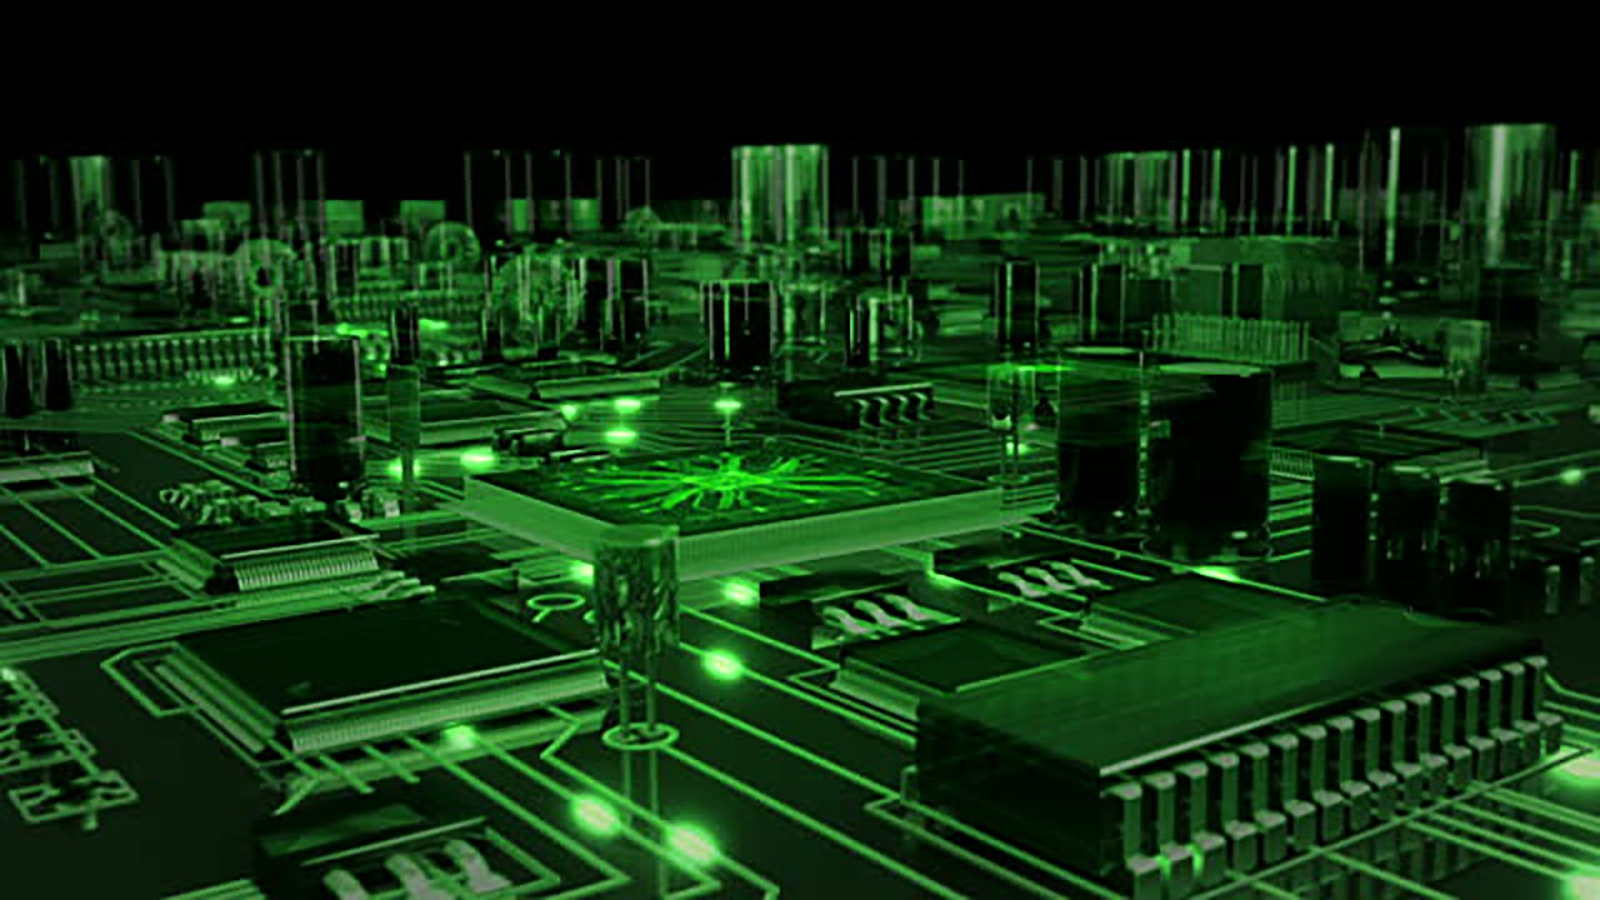 Electronic Circuit Board 10 Apk Download Android Personalization Apps Custom Design Wallpaper On Screenshot 4